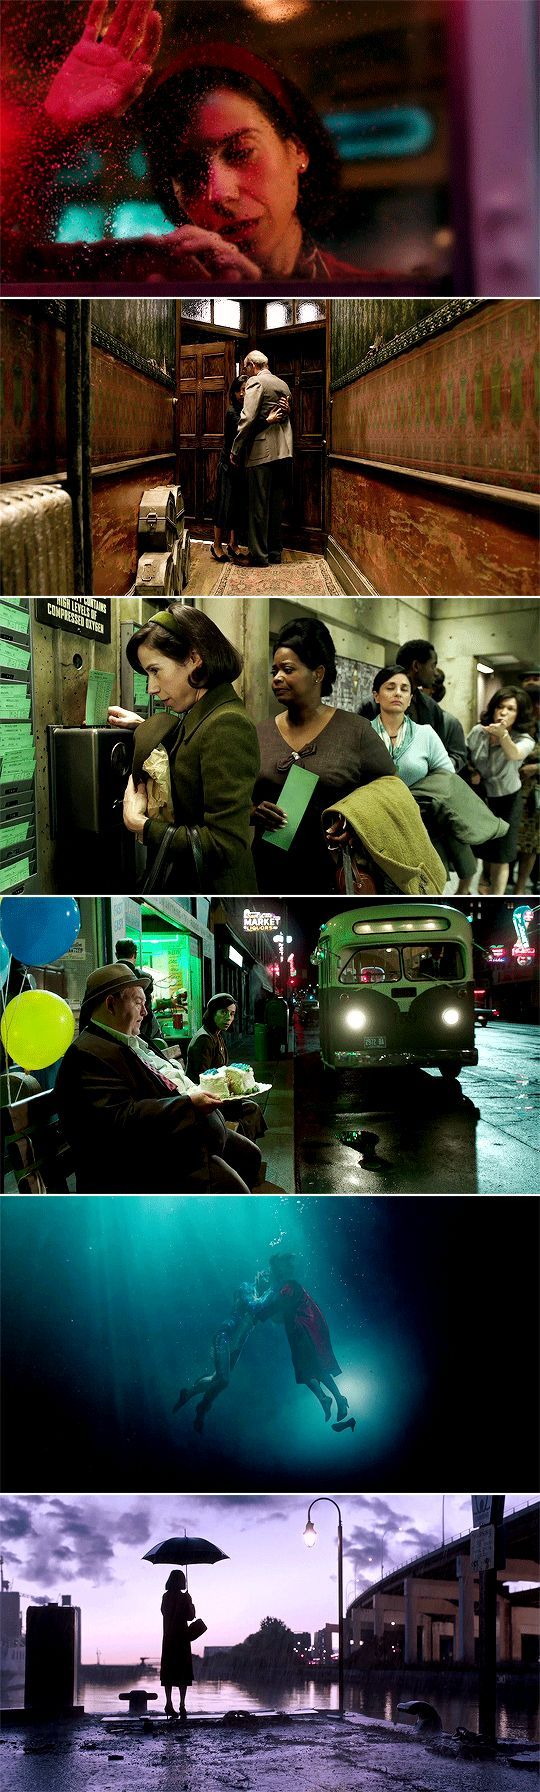 The Shape of Water (2017) - Watch The Shape of Water Full Movie HD Free Download - Watch Drama Movie The Shape of Water (2017) ⇌@△ full-Movie Online  